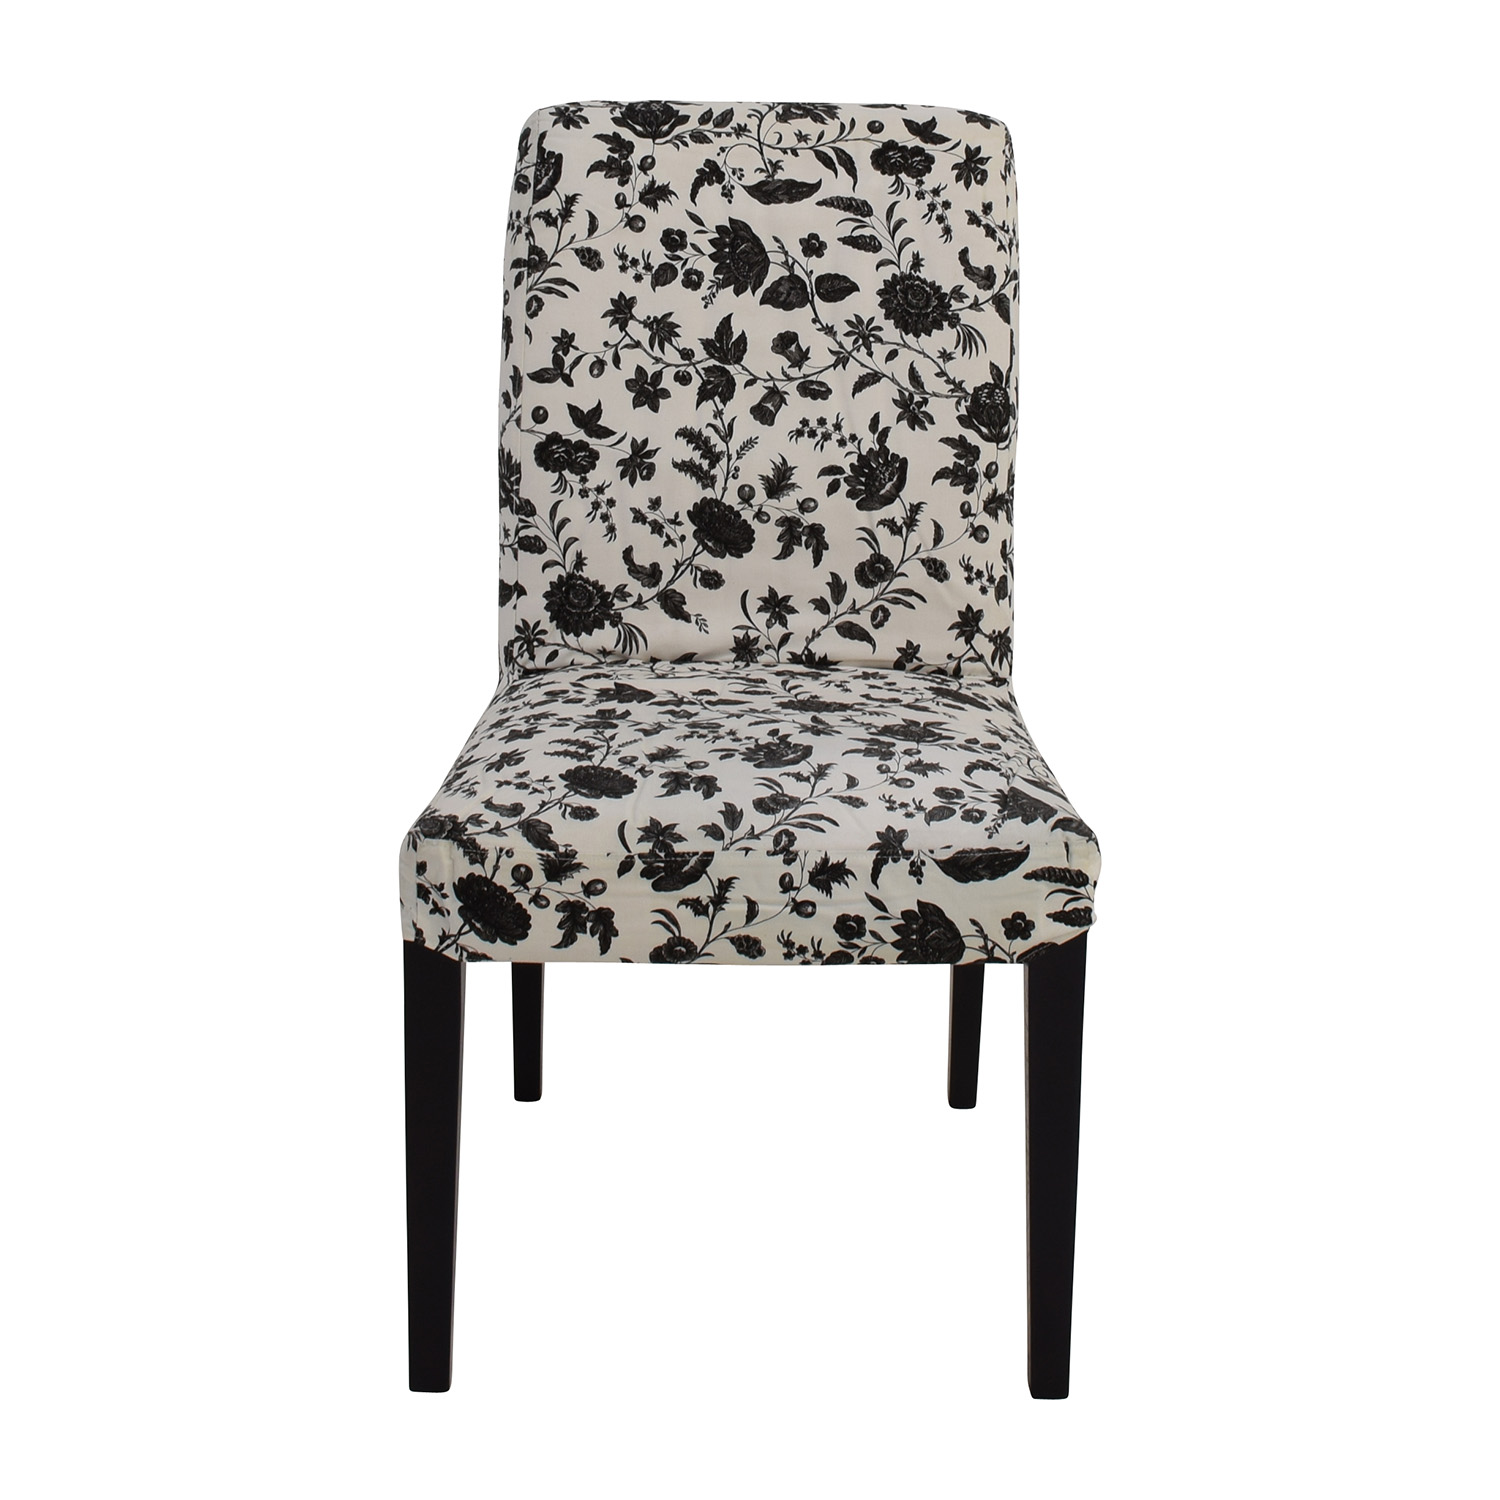 Awe Inspiring 77 Off Black White Floral Dining Chair Chairs Caraccident5 Cool Chair Designs And Ideas Caraccident5Info